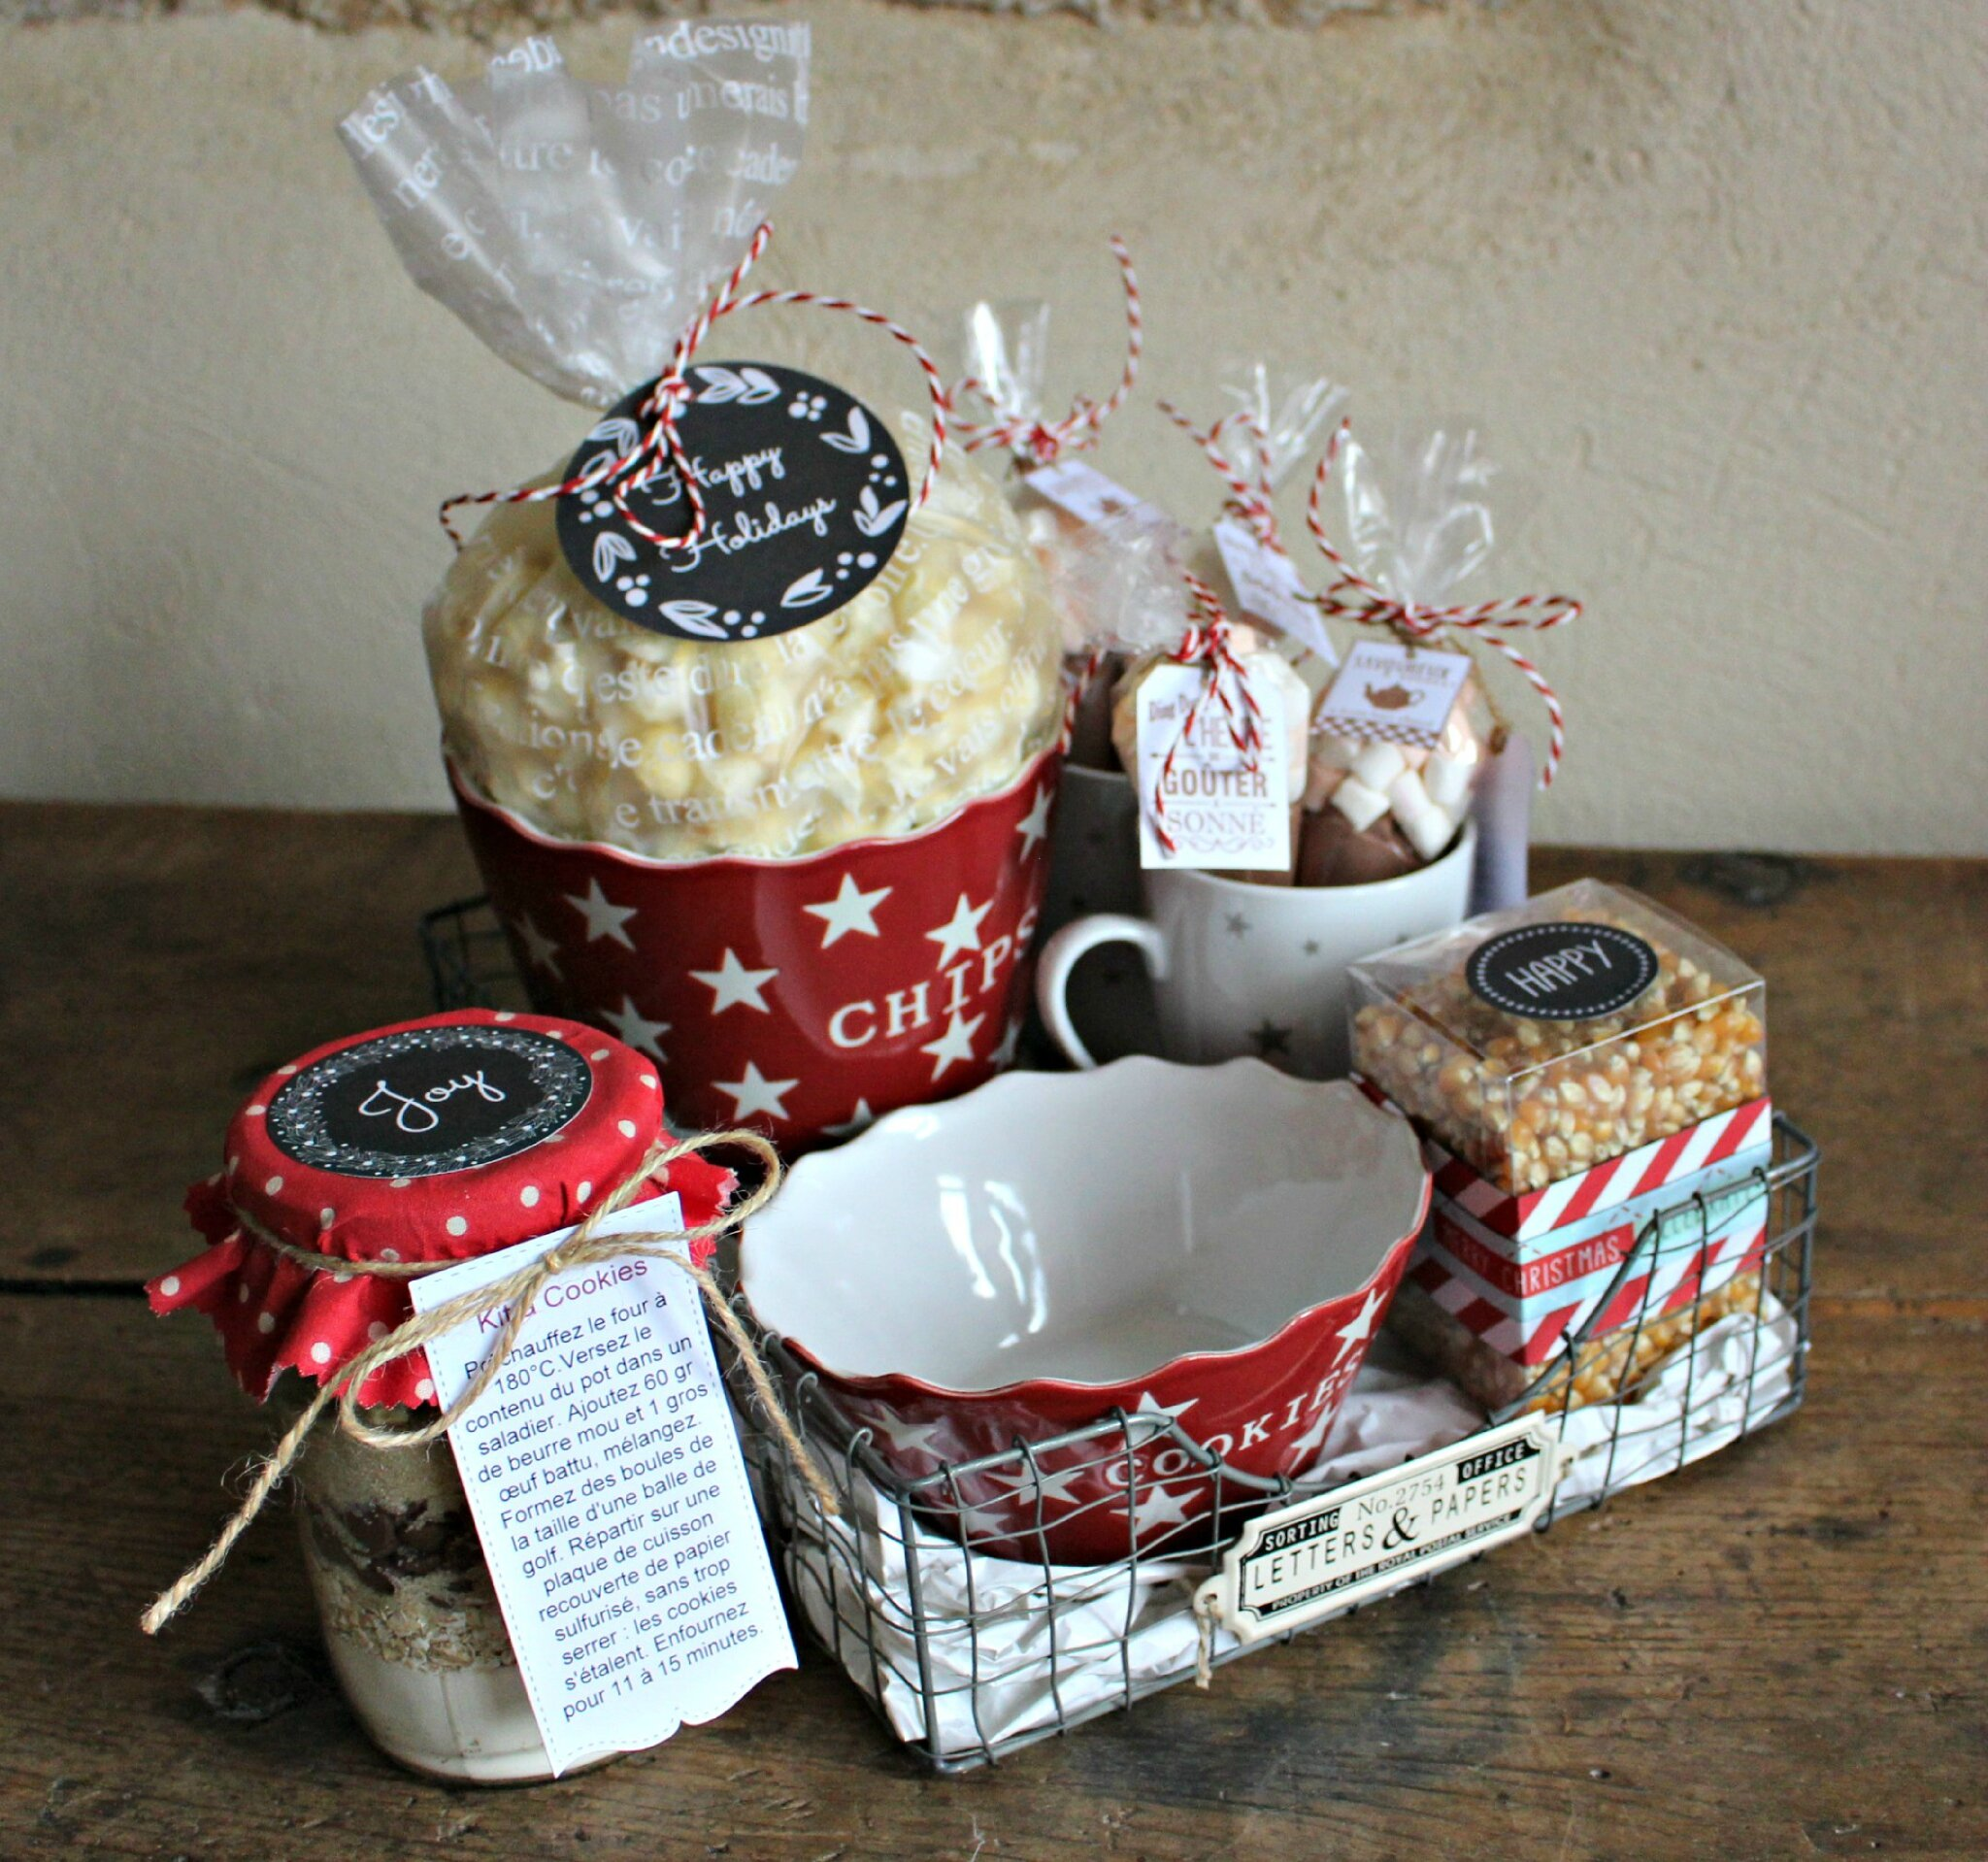 Panier gourmand keep calm and eat some sweets is de - Panier gourmand noel fait maison ...